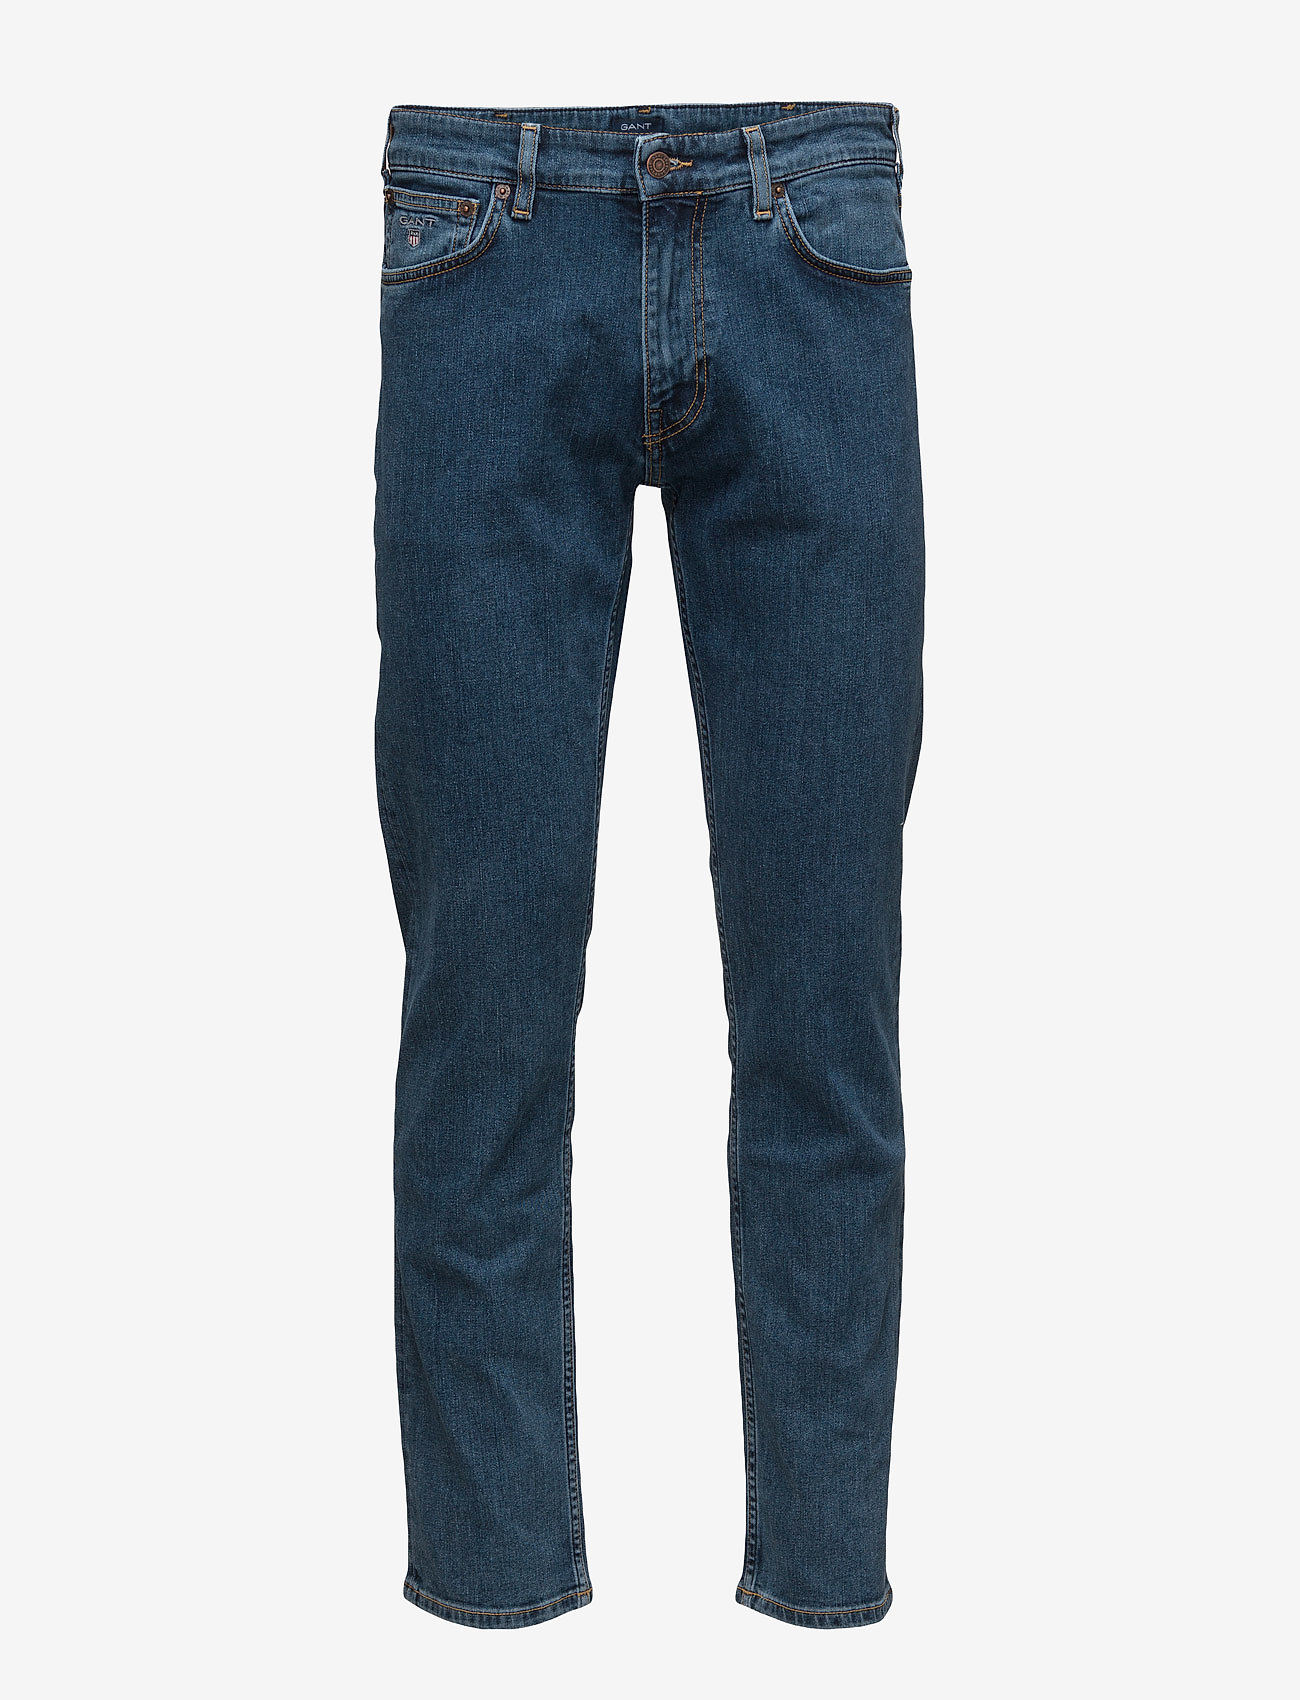 GANT - D1. REGULAR 11 OZ JEANS - regular jeans - mid blue - 1